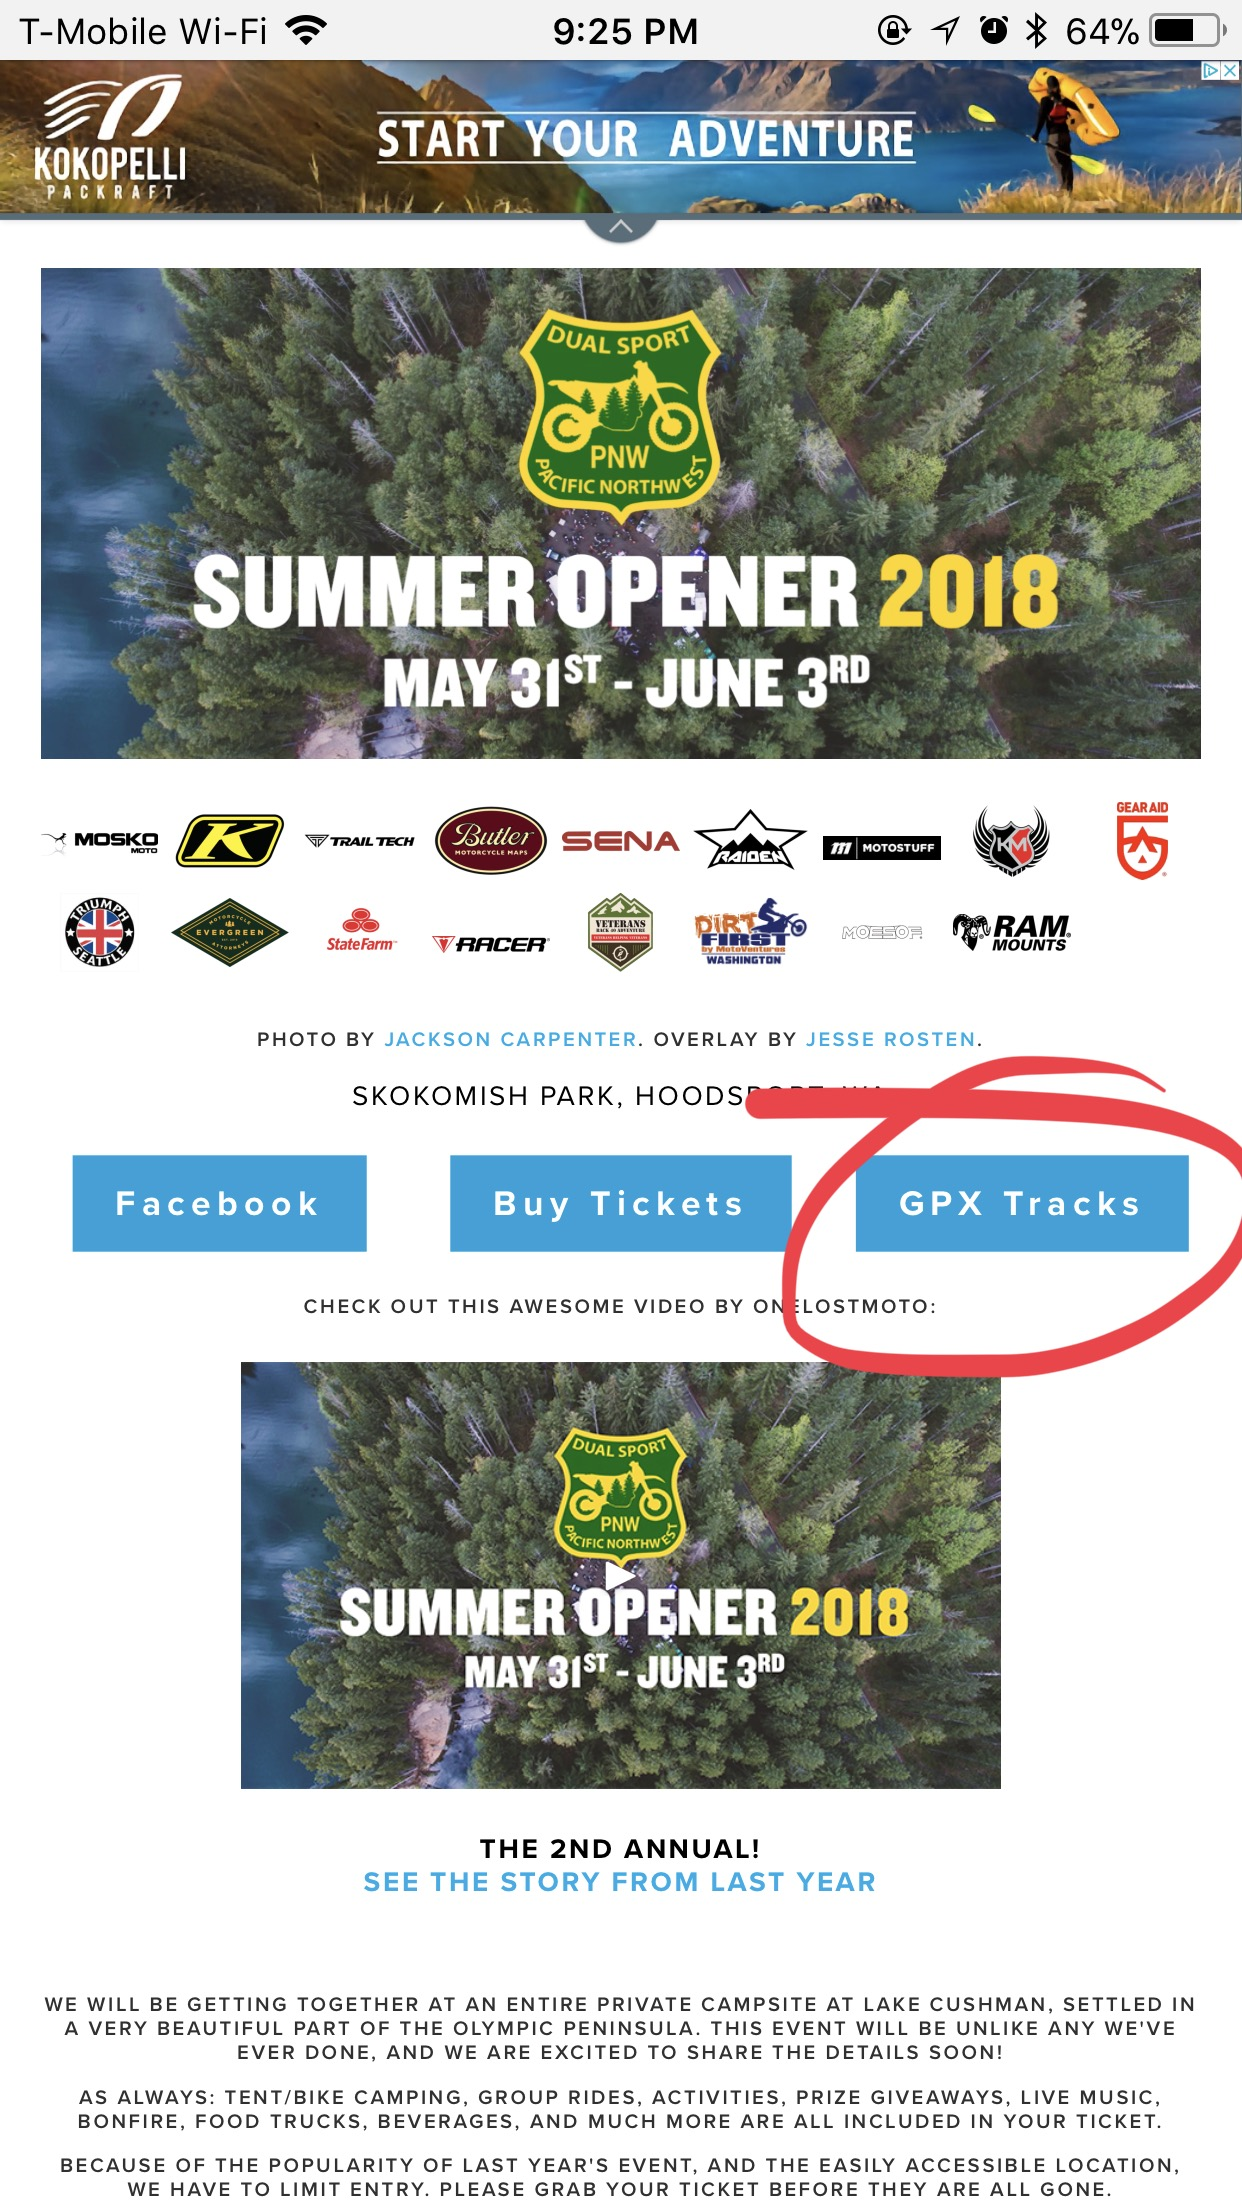 Find the GPX you want to download, like this one from our 2018 Summer Opener event.